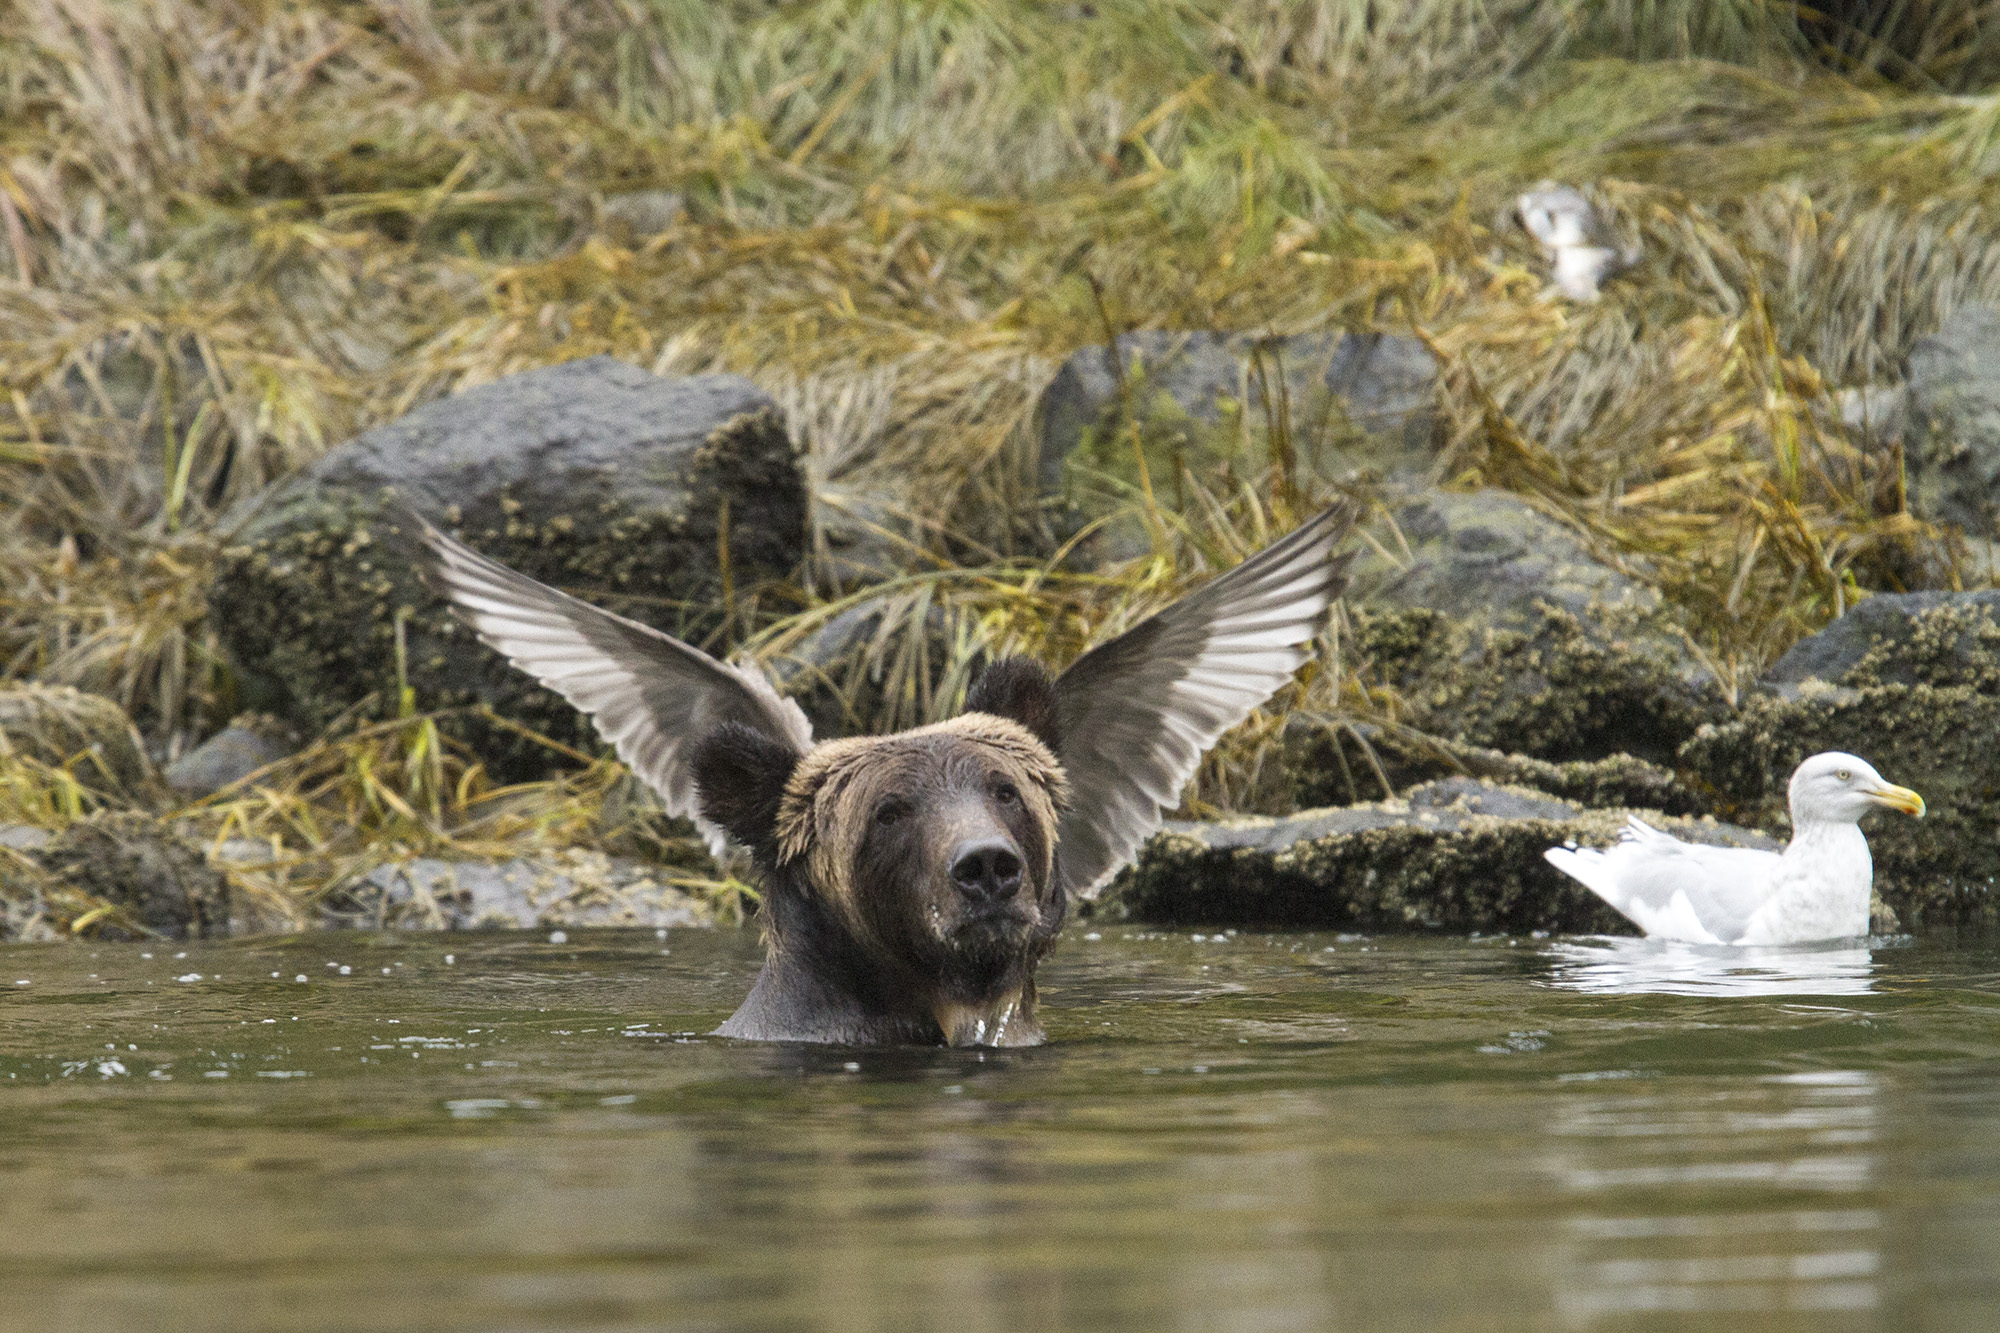 A bear poses in the Great Bear Rainforest, Canada. Photo by Adam Parsons/The Comedy Wildlife Photography Awards.